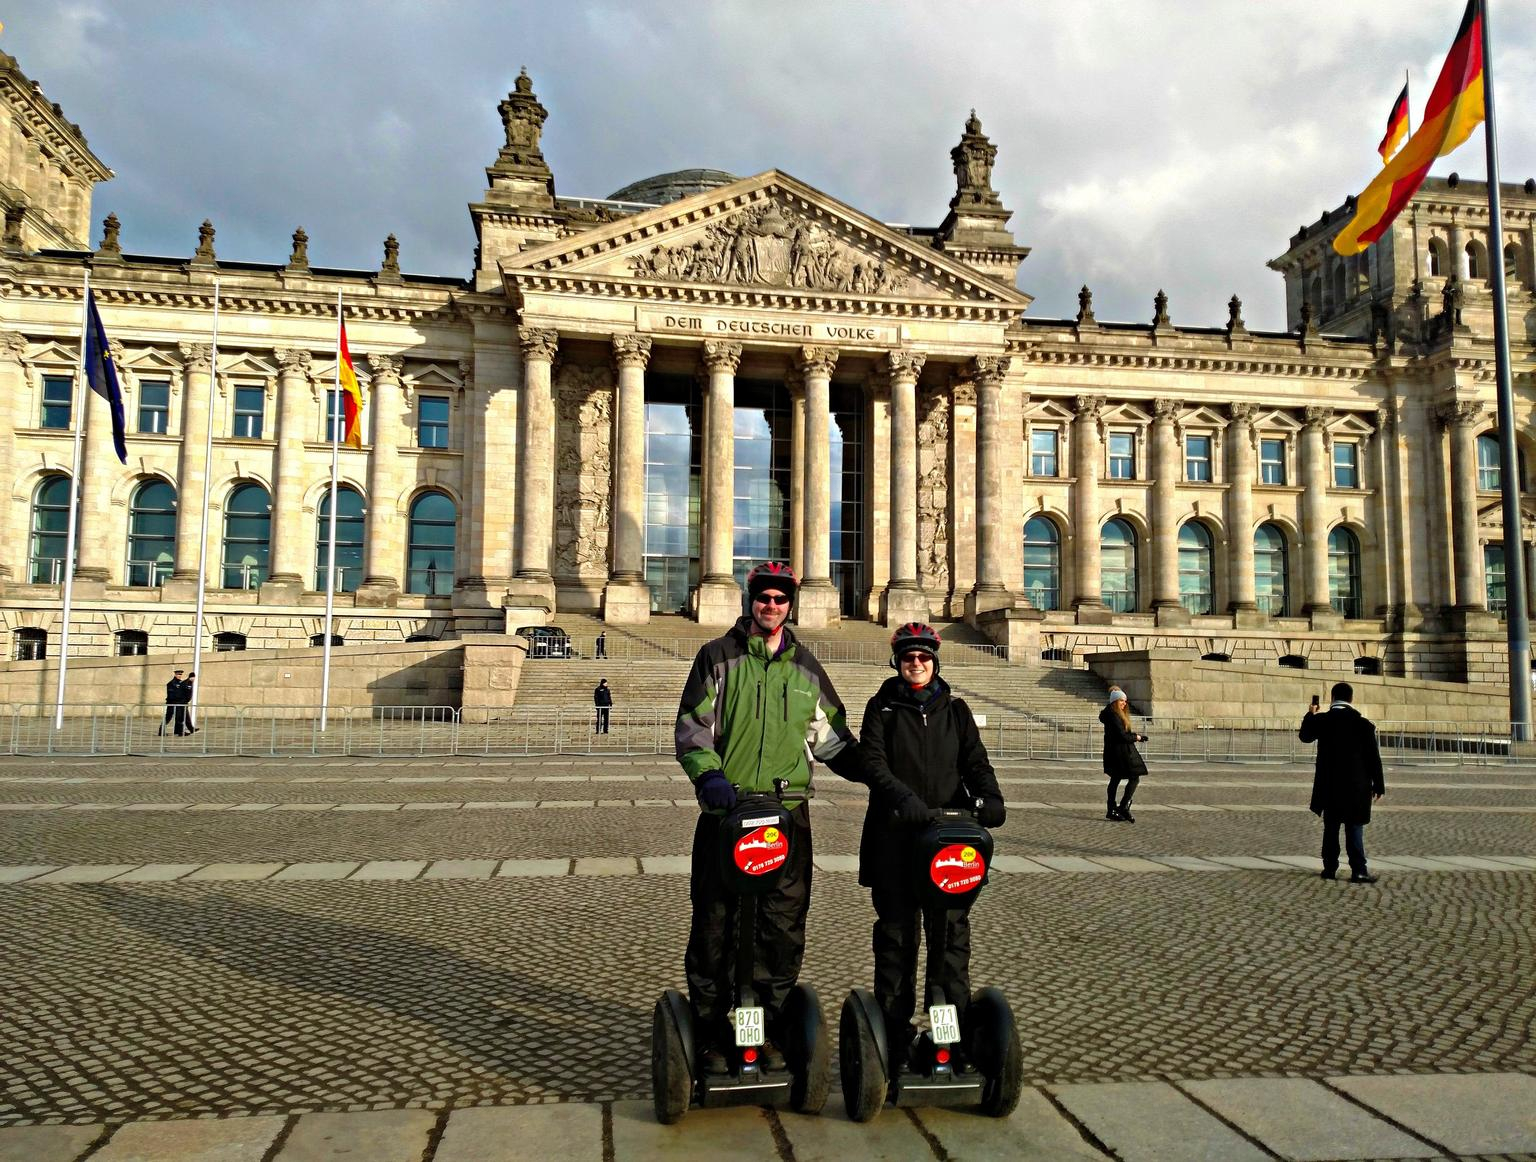 MORE PHOTOS, 2 Hour Berlin Small Group Segway Tour